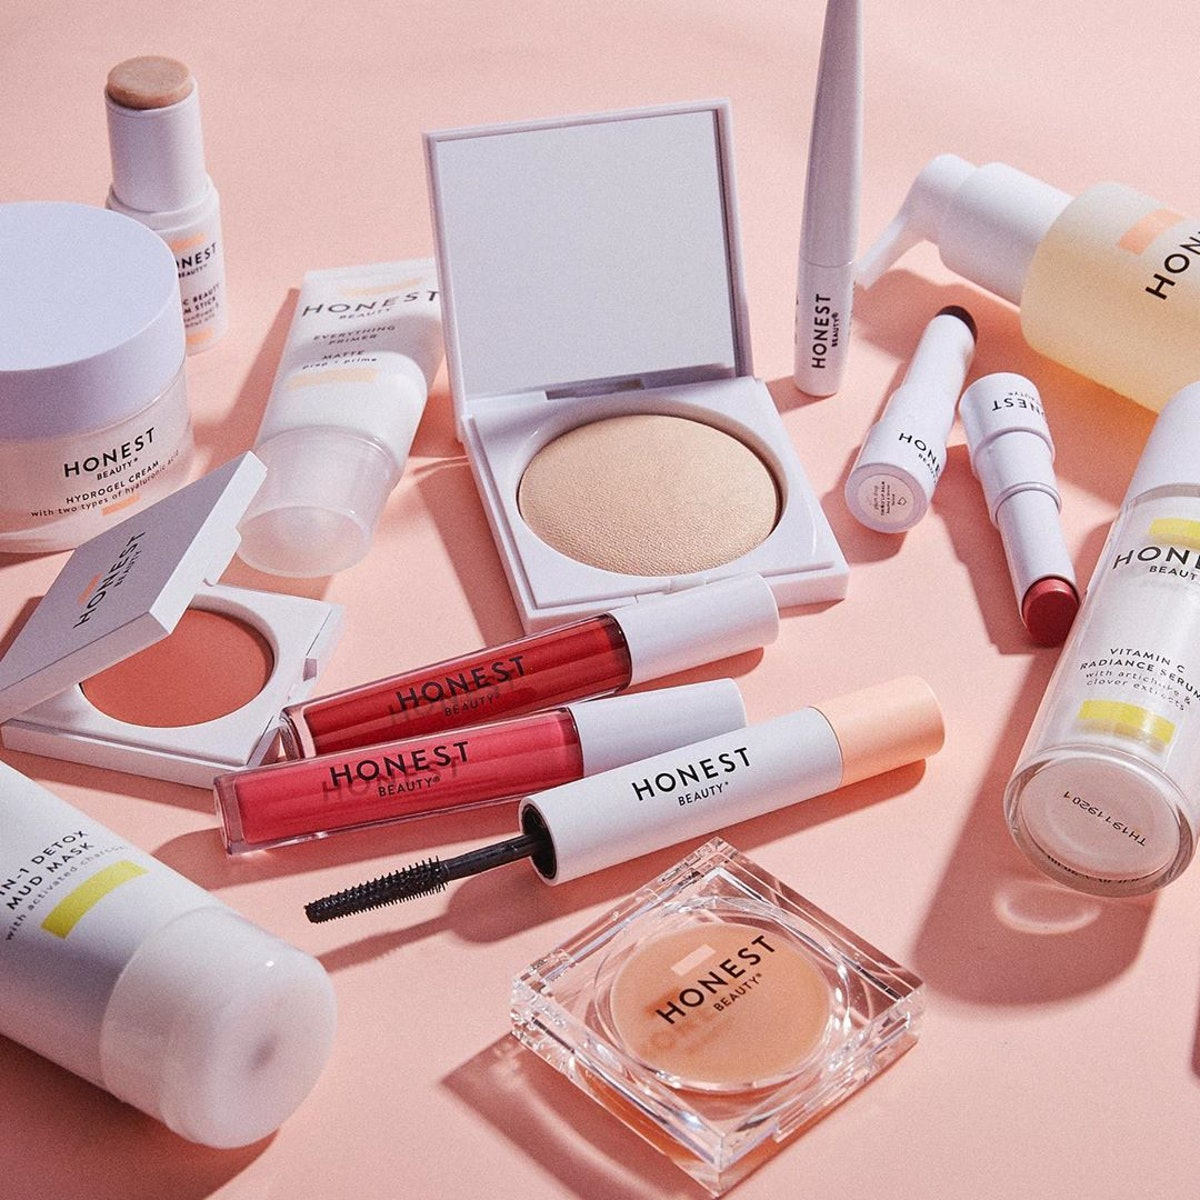 Honest Beauty's Memorial Day sale includes skin care, makeup, and self-care essentials